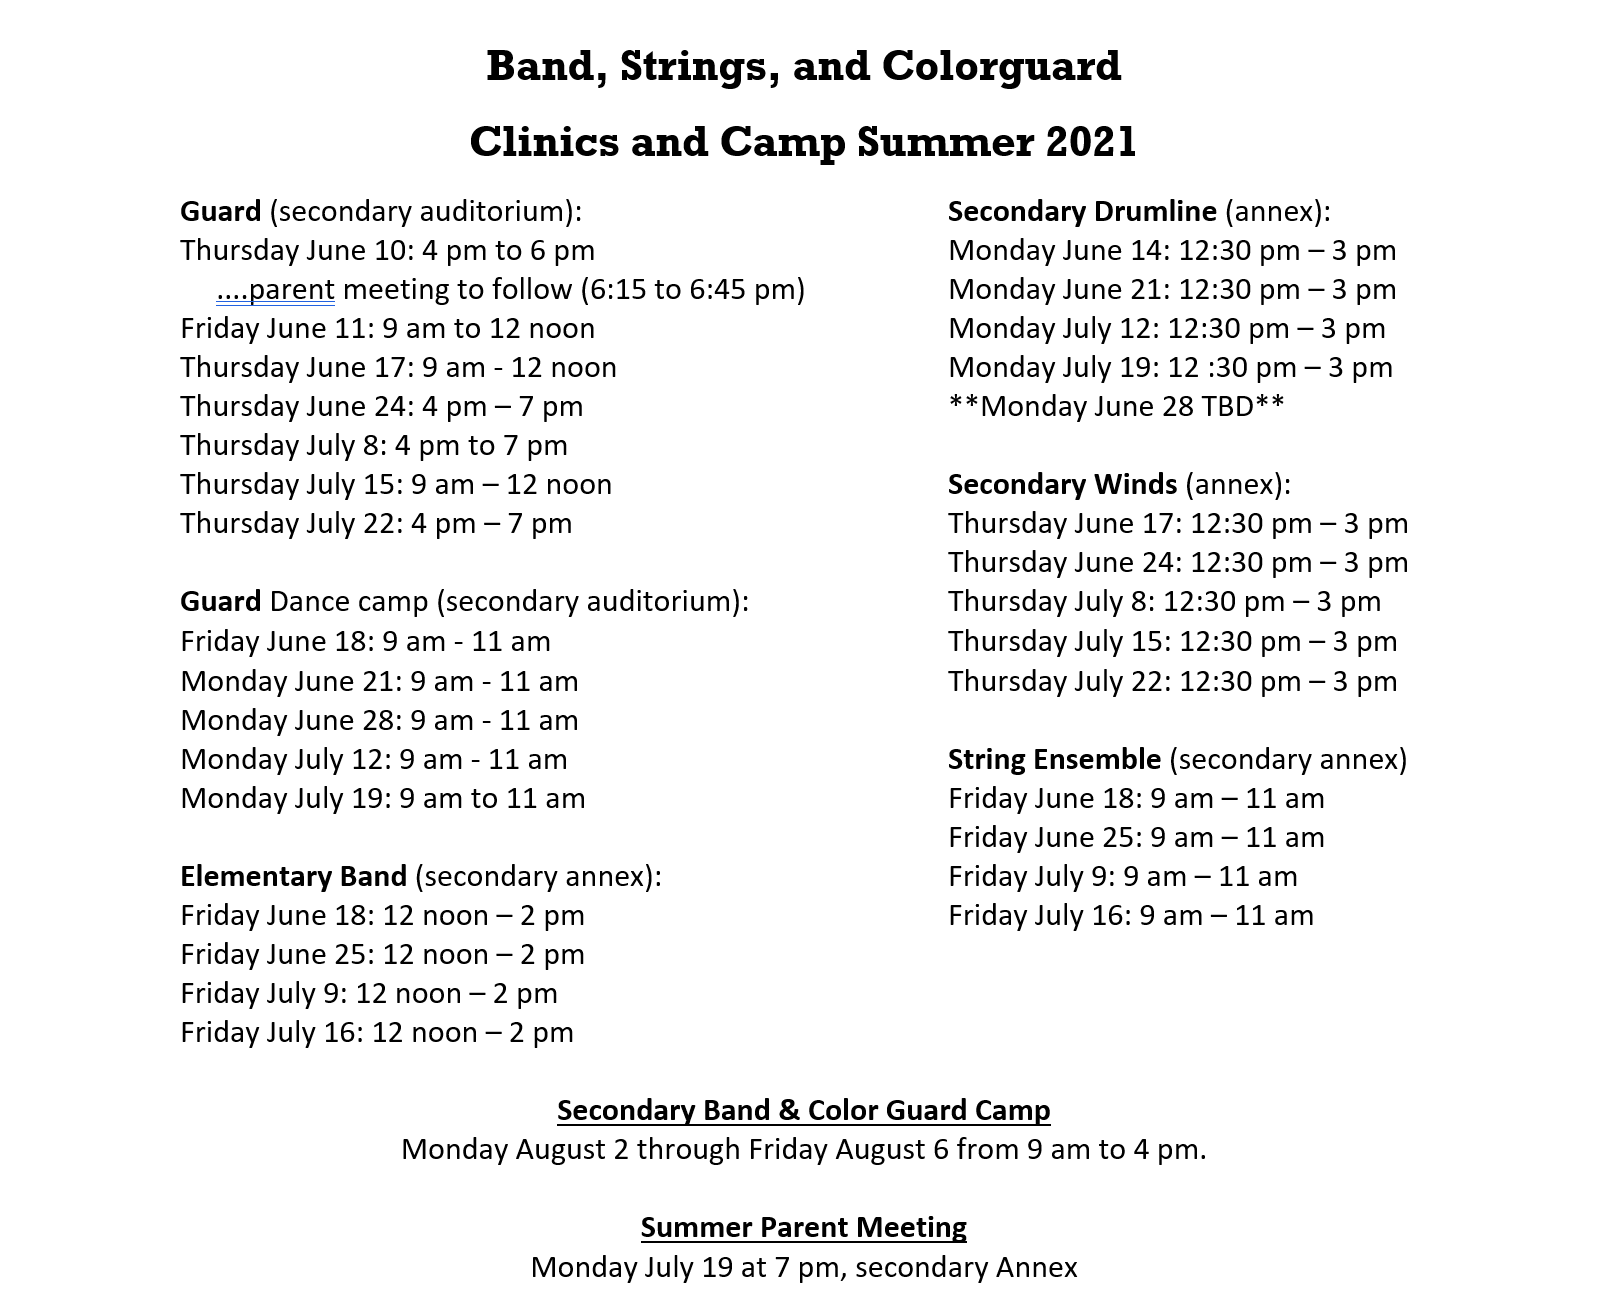 Clinics and Summer Camps